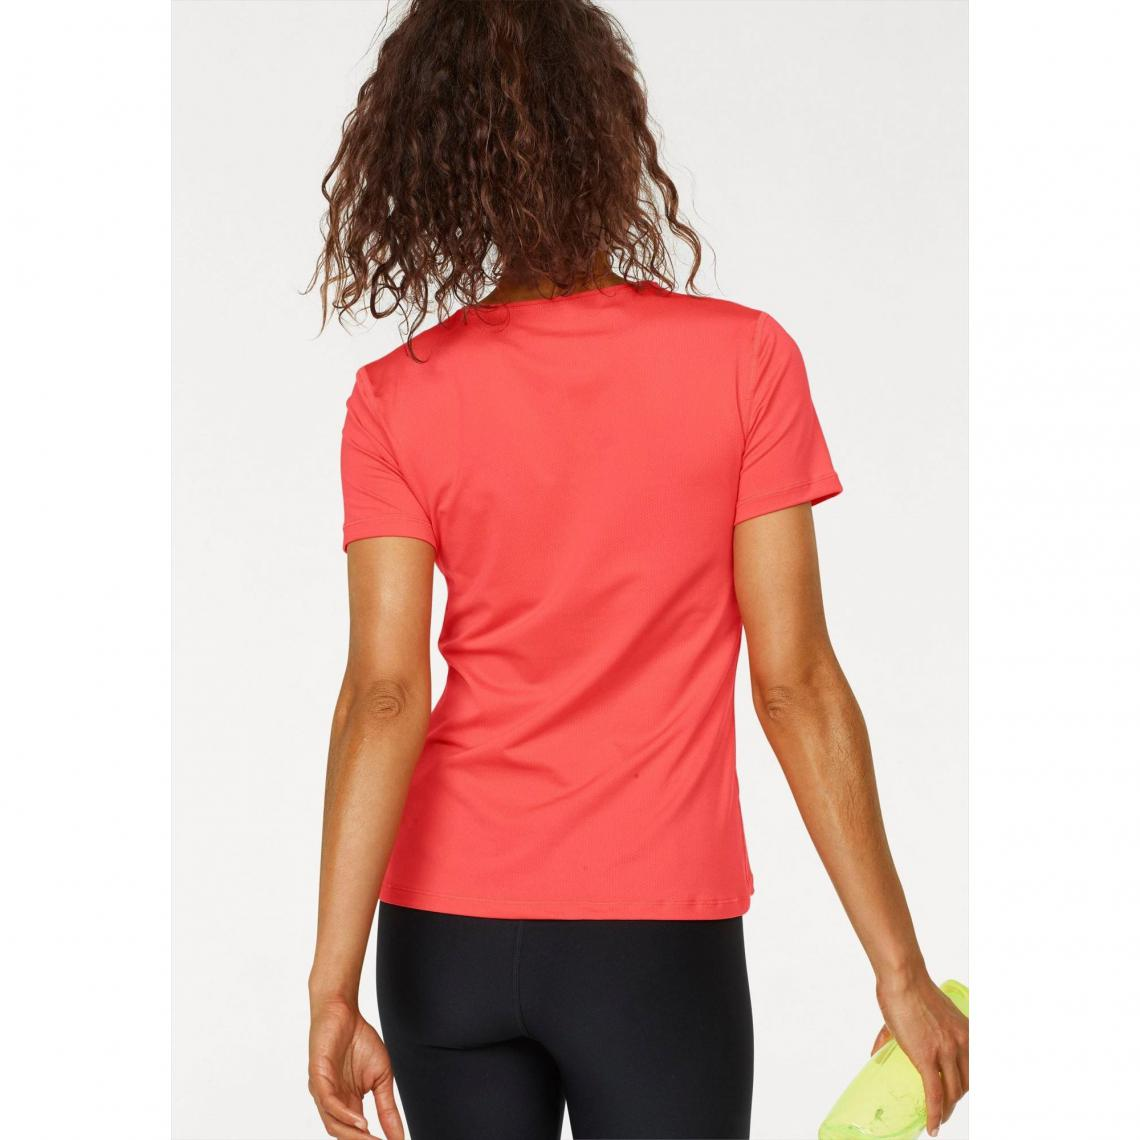 ensemble nike orange femme